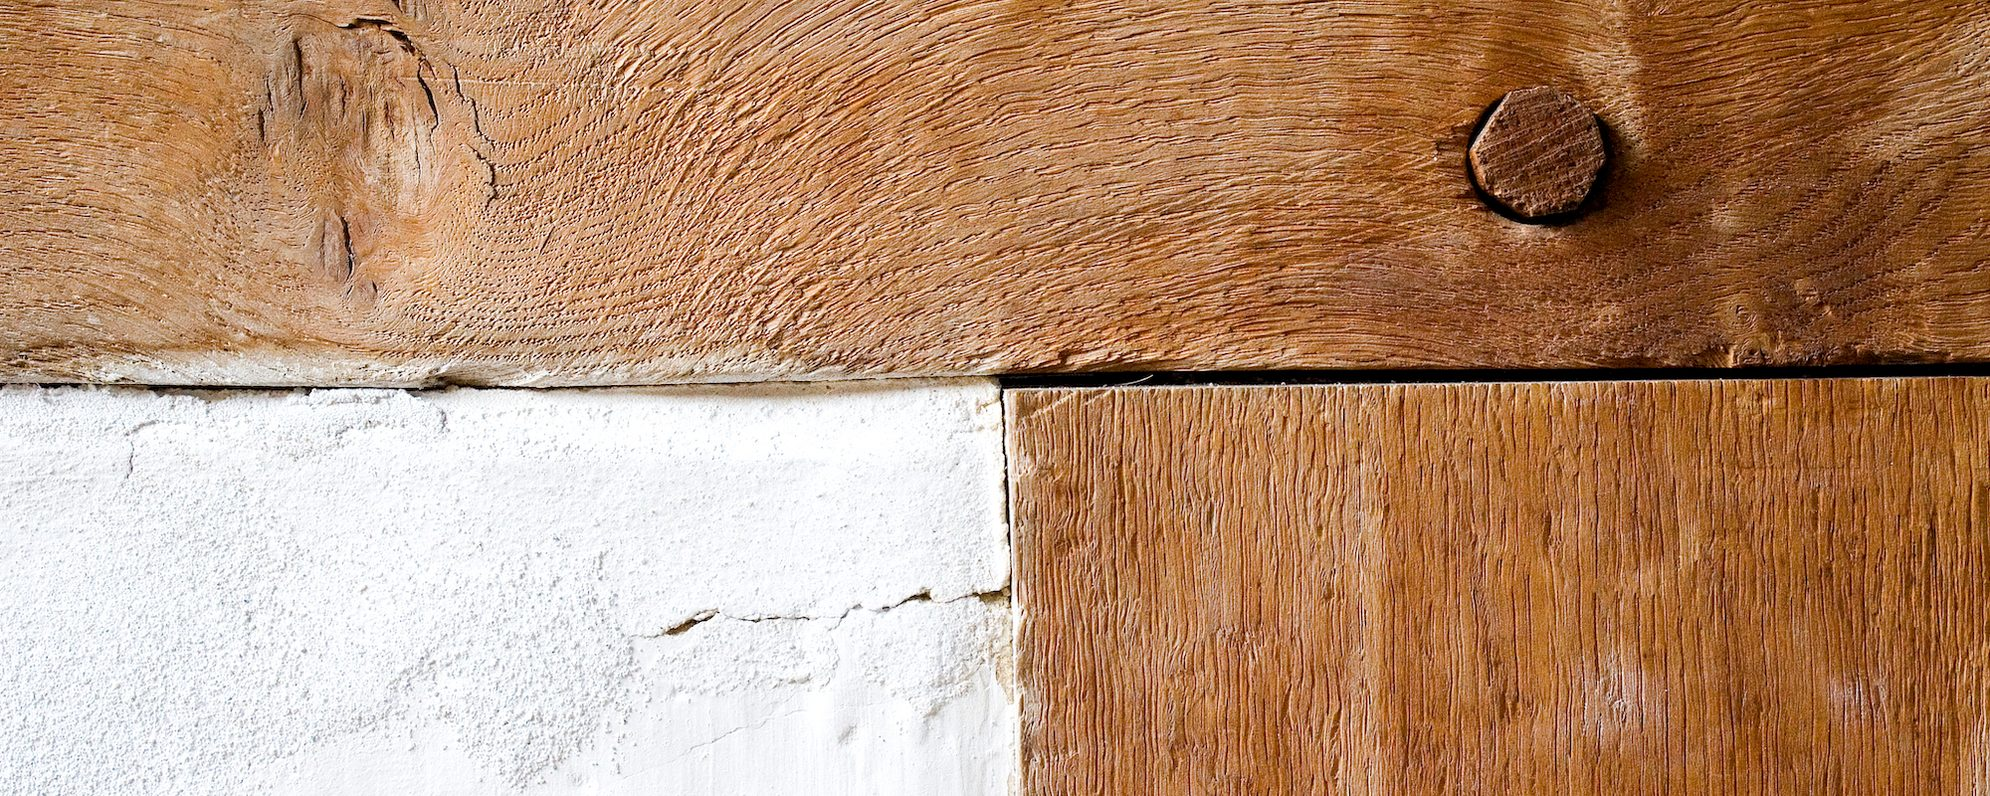 A close up of a wooden frame on a building